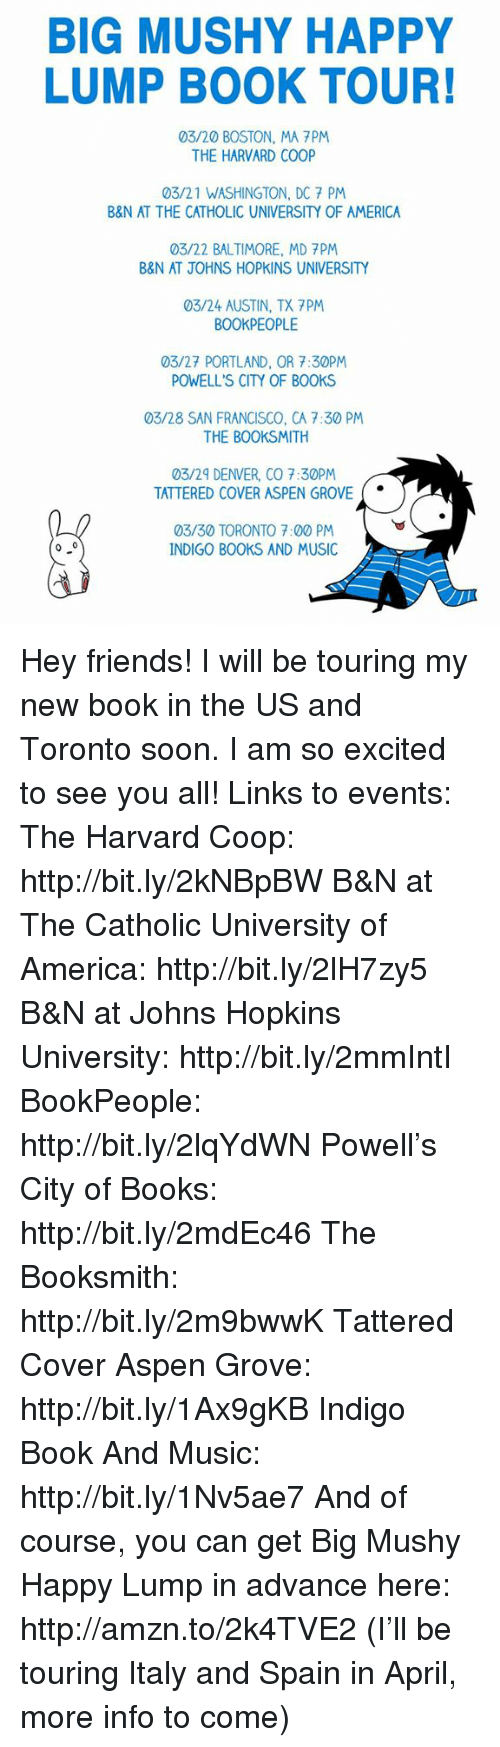 Denver Co: BIG MUSHY HAPPY  LUMP BOOK TOUR!  03/20 BOSTON, MA PM  THE HARVARD COOP  03/21 WASHINGTON, DC 7 PM  B&N AT THE CATHOLIC UNIVERSITY OF AMERICA  03/22 BALTIMORE, MD 7PM  B&N AT JOHNS HOPKINS UNIVERSITY  03/24 AUSTIN, TX 7PM  BOOKPEOPLE  03/27 PORTLAND, OR 7:30PM  POWELL'S CITY OF BOOKS  03/28 SAN FRANCISCO, CA 7:30 PM  THE BOOKSMITH  03/29 DENVER, CO 7:30PM  TATTERED COVER ASPEN GROVE  03/30 TORONTO 7:00 PM  0 0  INDIGO BOOKS AND MUSIC Hey friends! I will be touring my new book in the US and Toronto soon. I am so excited to see you all!  Links to events:  The Harvard Coop: http://bit.ly/2kNBpBW  B&N at The Catholic University of America: http://bit.ly/2lH7zy5  B&N at Johns Hopkins University: http://bit.ly/2mmIntI  BookPeople: http://bit.ly/2lqYdWN  Powell's City of Books: http://bit.ly/2mdEc46  The Booksmith: http://bit.ly/2m9bwwK  Tattered Cover Aspen Grove: http://bit.ly/1Ax9gKB  Indigo Book And Music: http://bit.ly/1Nv5ae7  And of course, you can get Big Mushy Happy Lump in advance here: http://amzn.to/2k4TVE2  (I'll be touring Italy and Spain in April, more info to come)